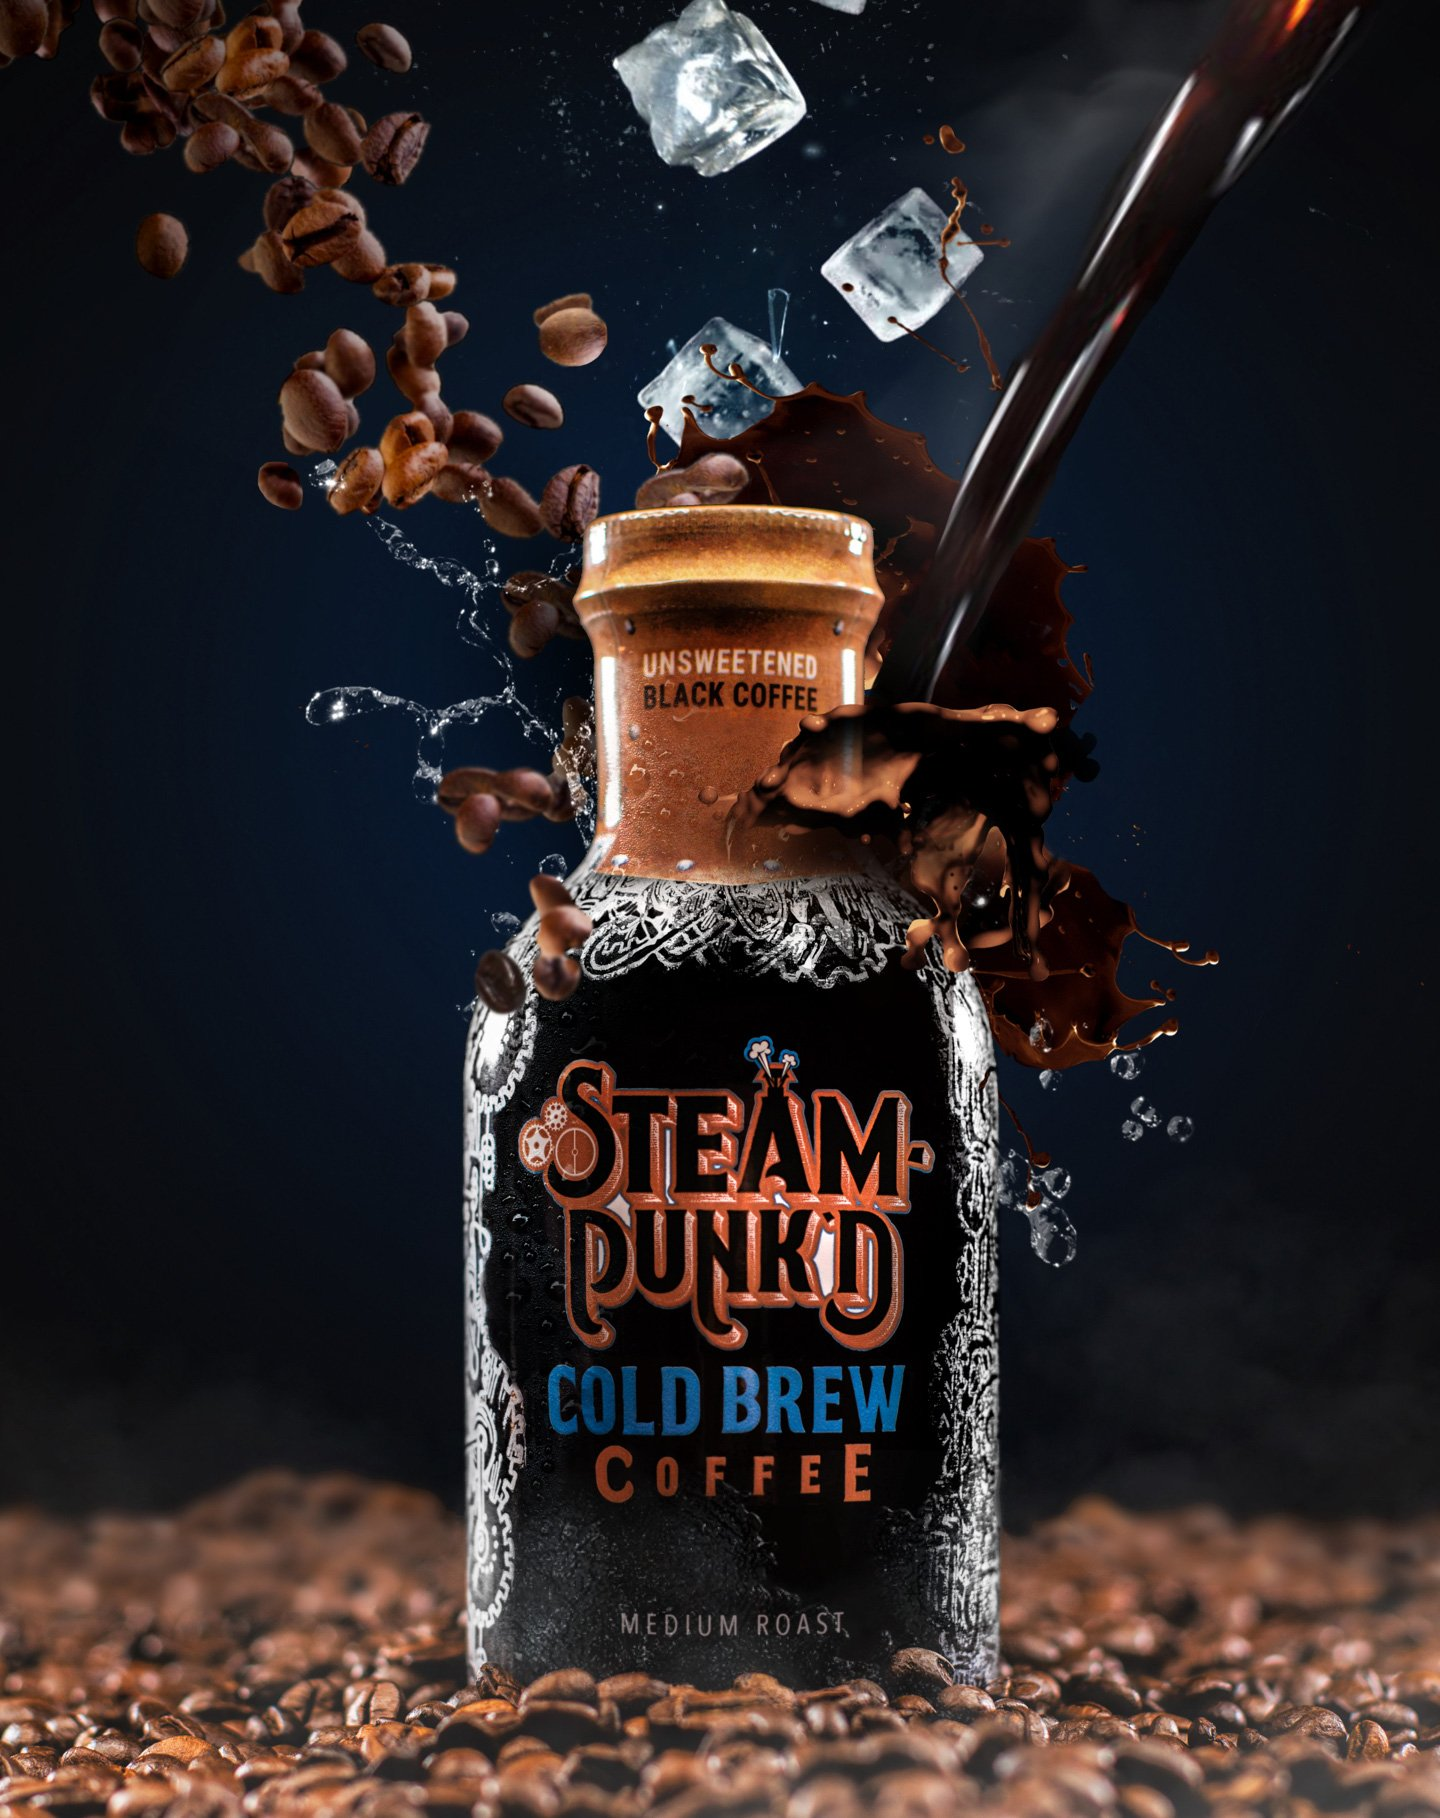 Sunny Crunch Products Steam Punk'd